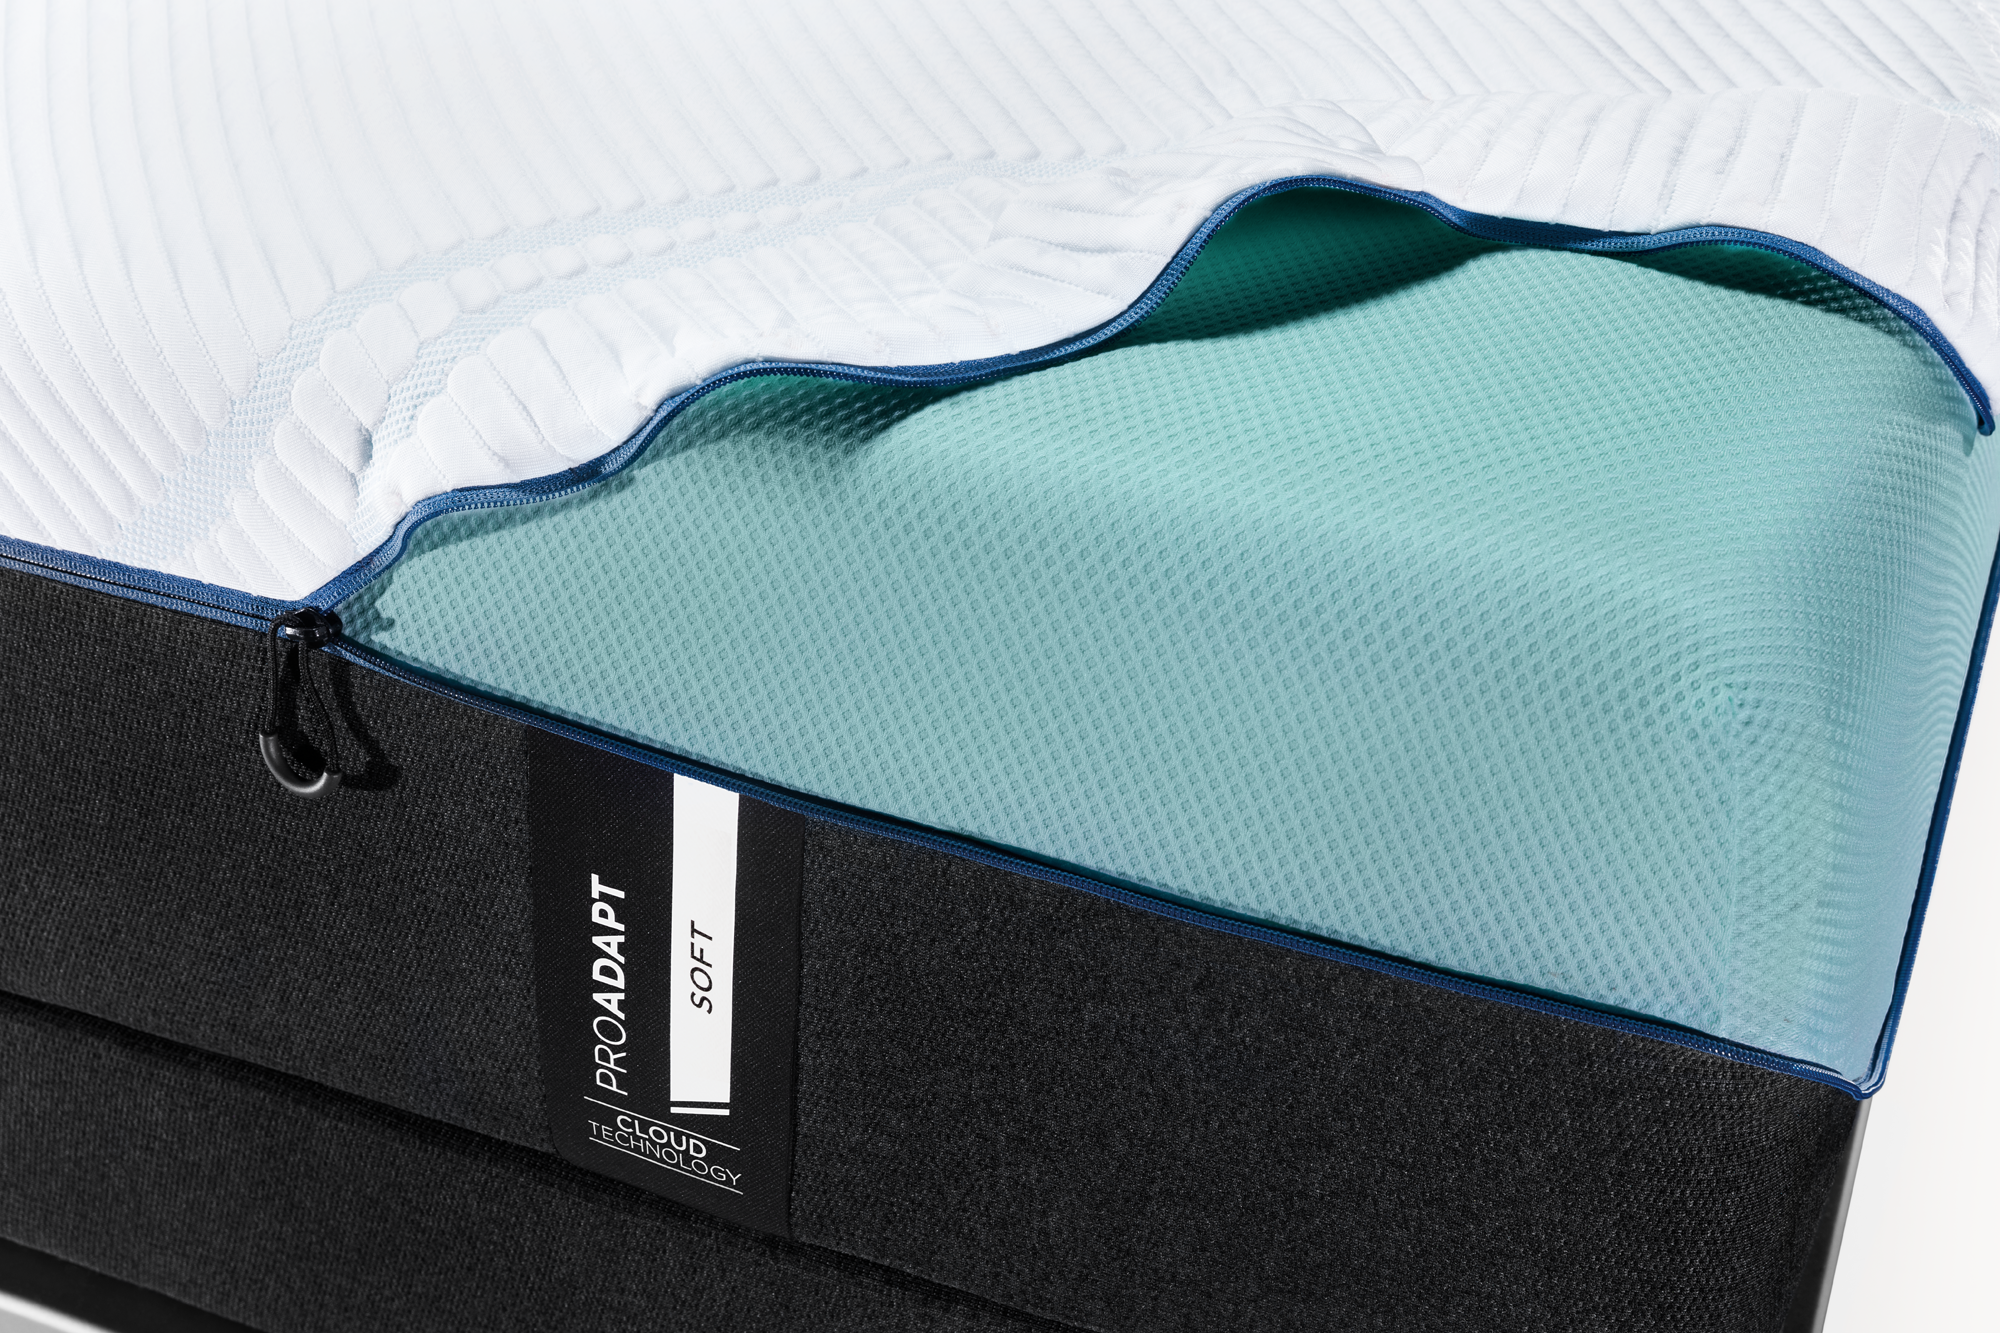 a top cover unzipped , folded over the corner of a ProAdapt Soft mattress